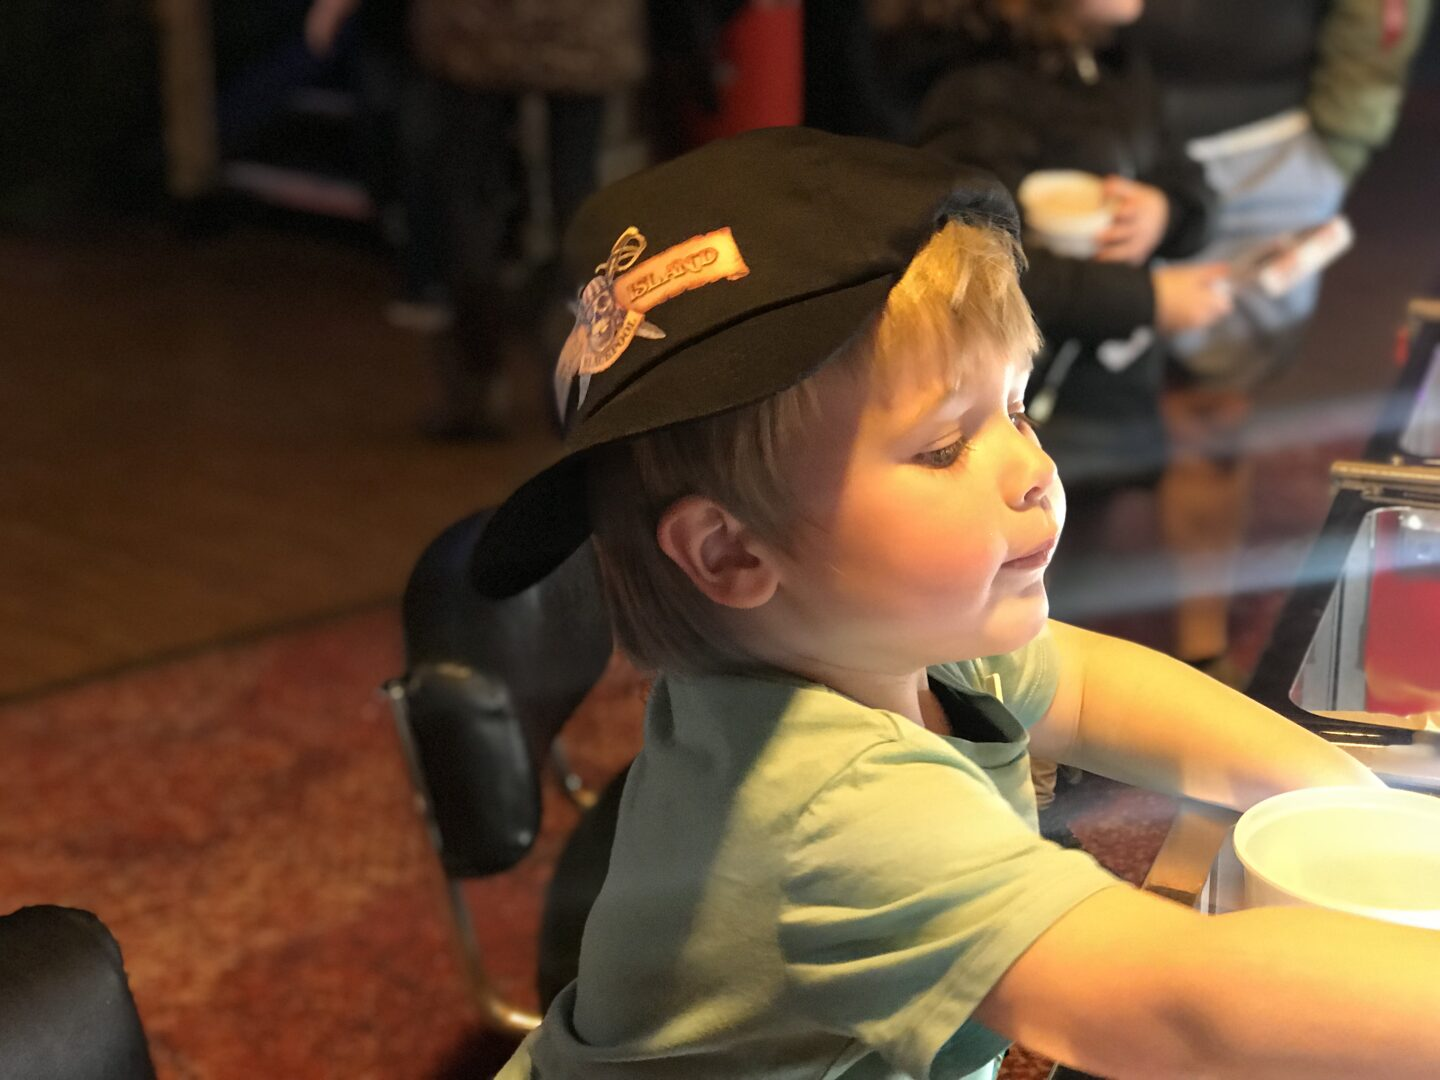 Dexter wearing a coral island hat, playing on the 2p machines